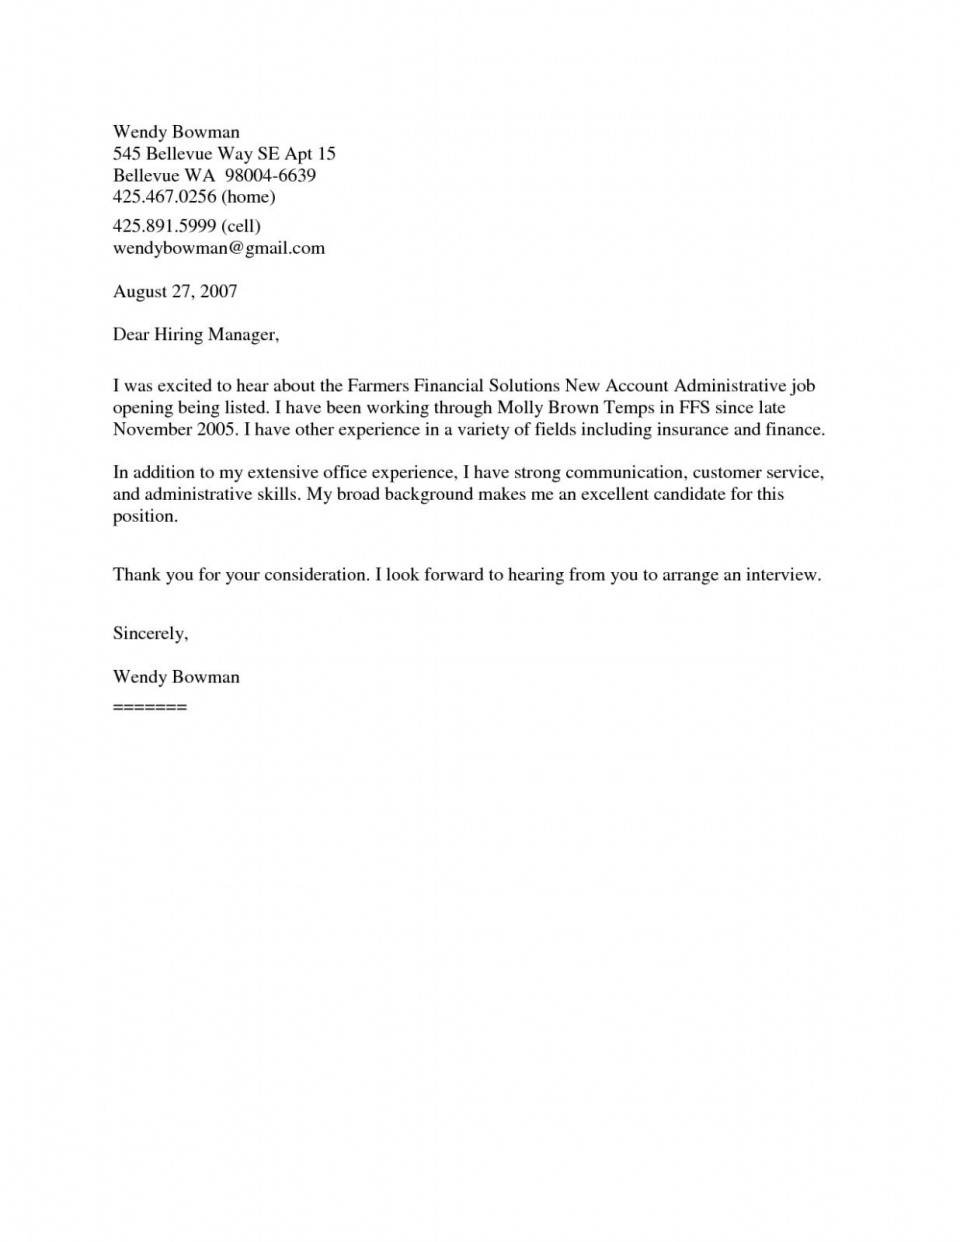 009 Frightening Generic Cover Letter For Resume Photo  General Example960